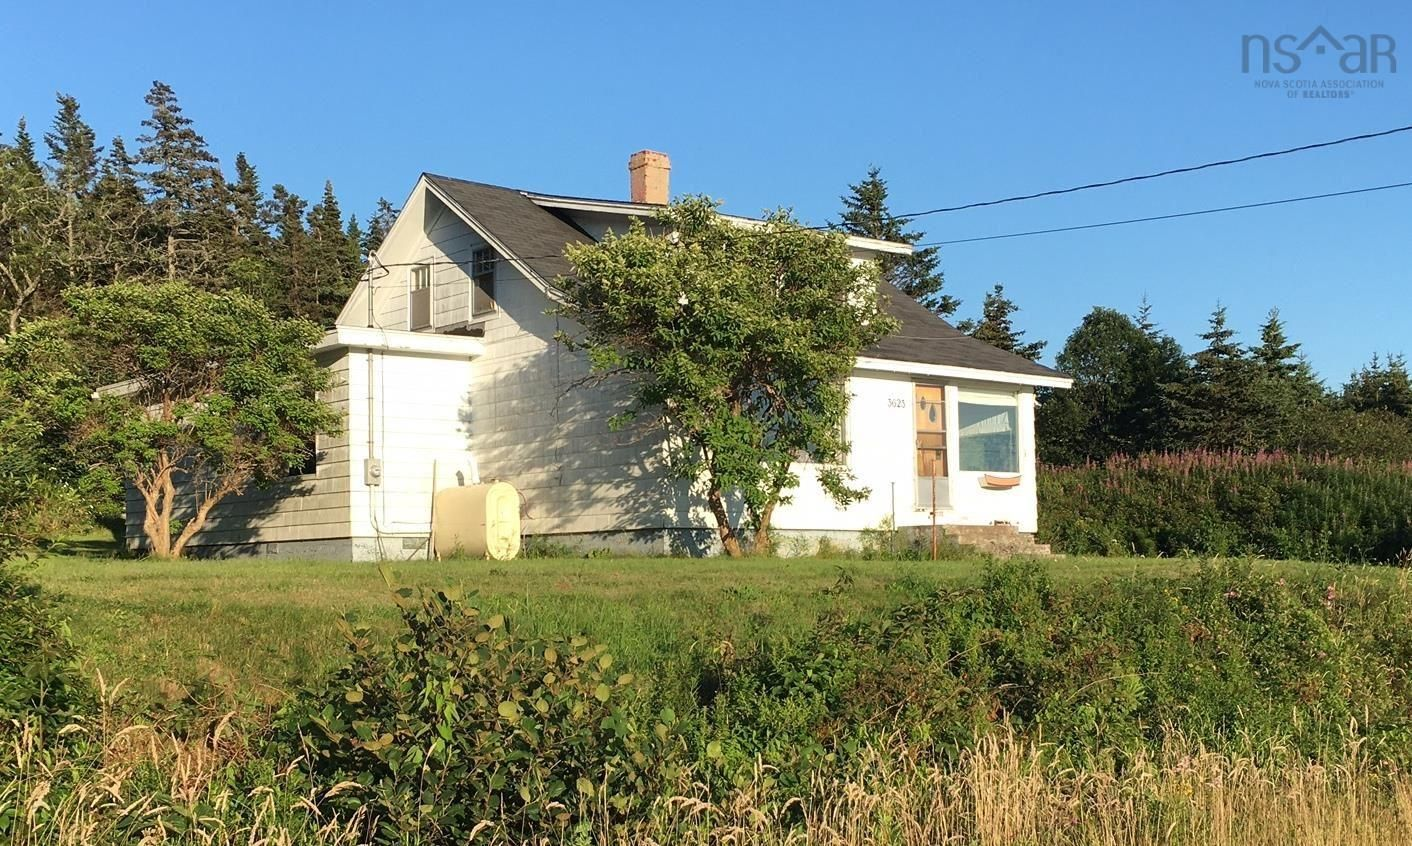 Main Photo: 3623 HIGHWAY 217 in East Ferry: 401-Digby County Residential for sale (Annapolis Valley)  : MLS®# 202119912